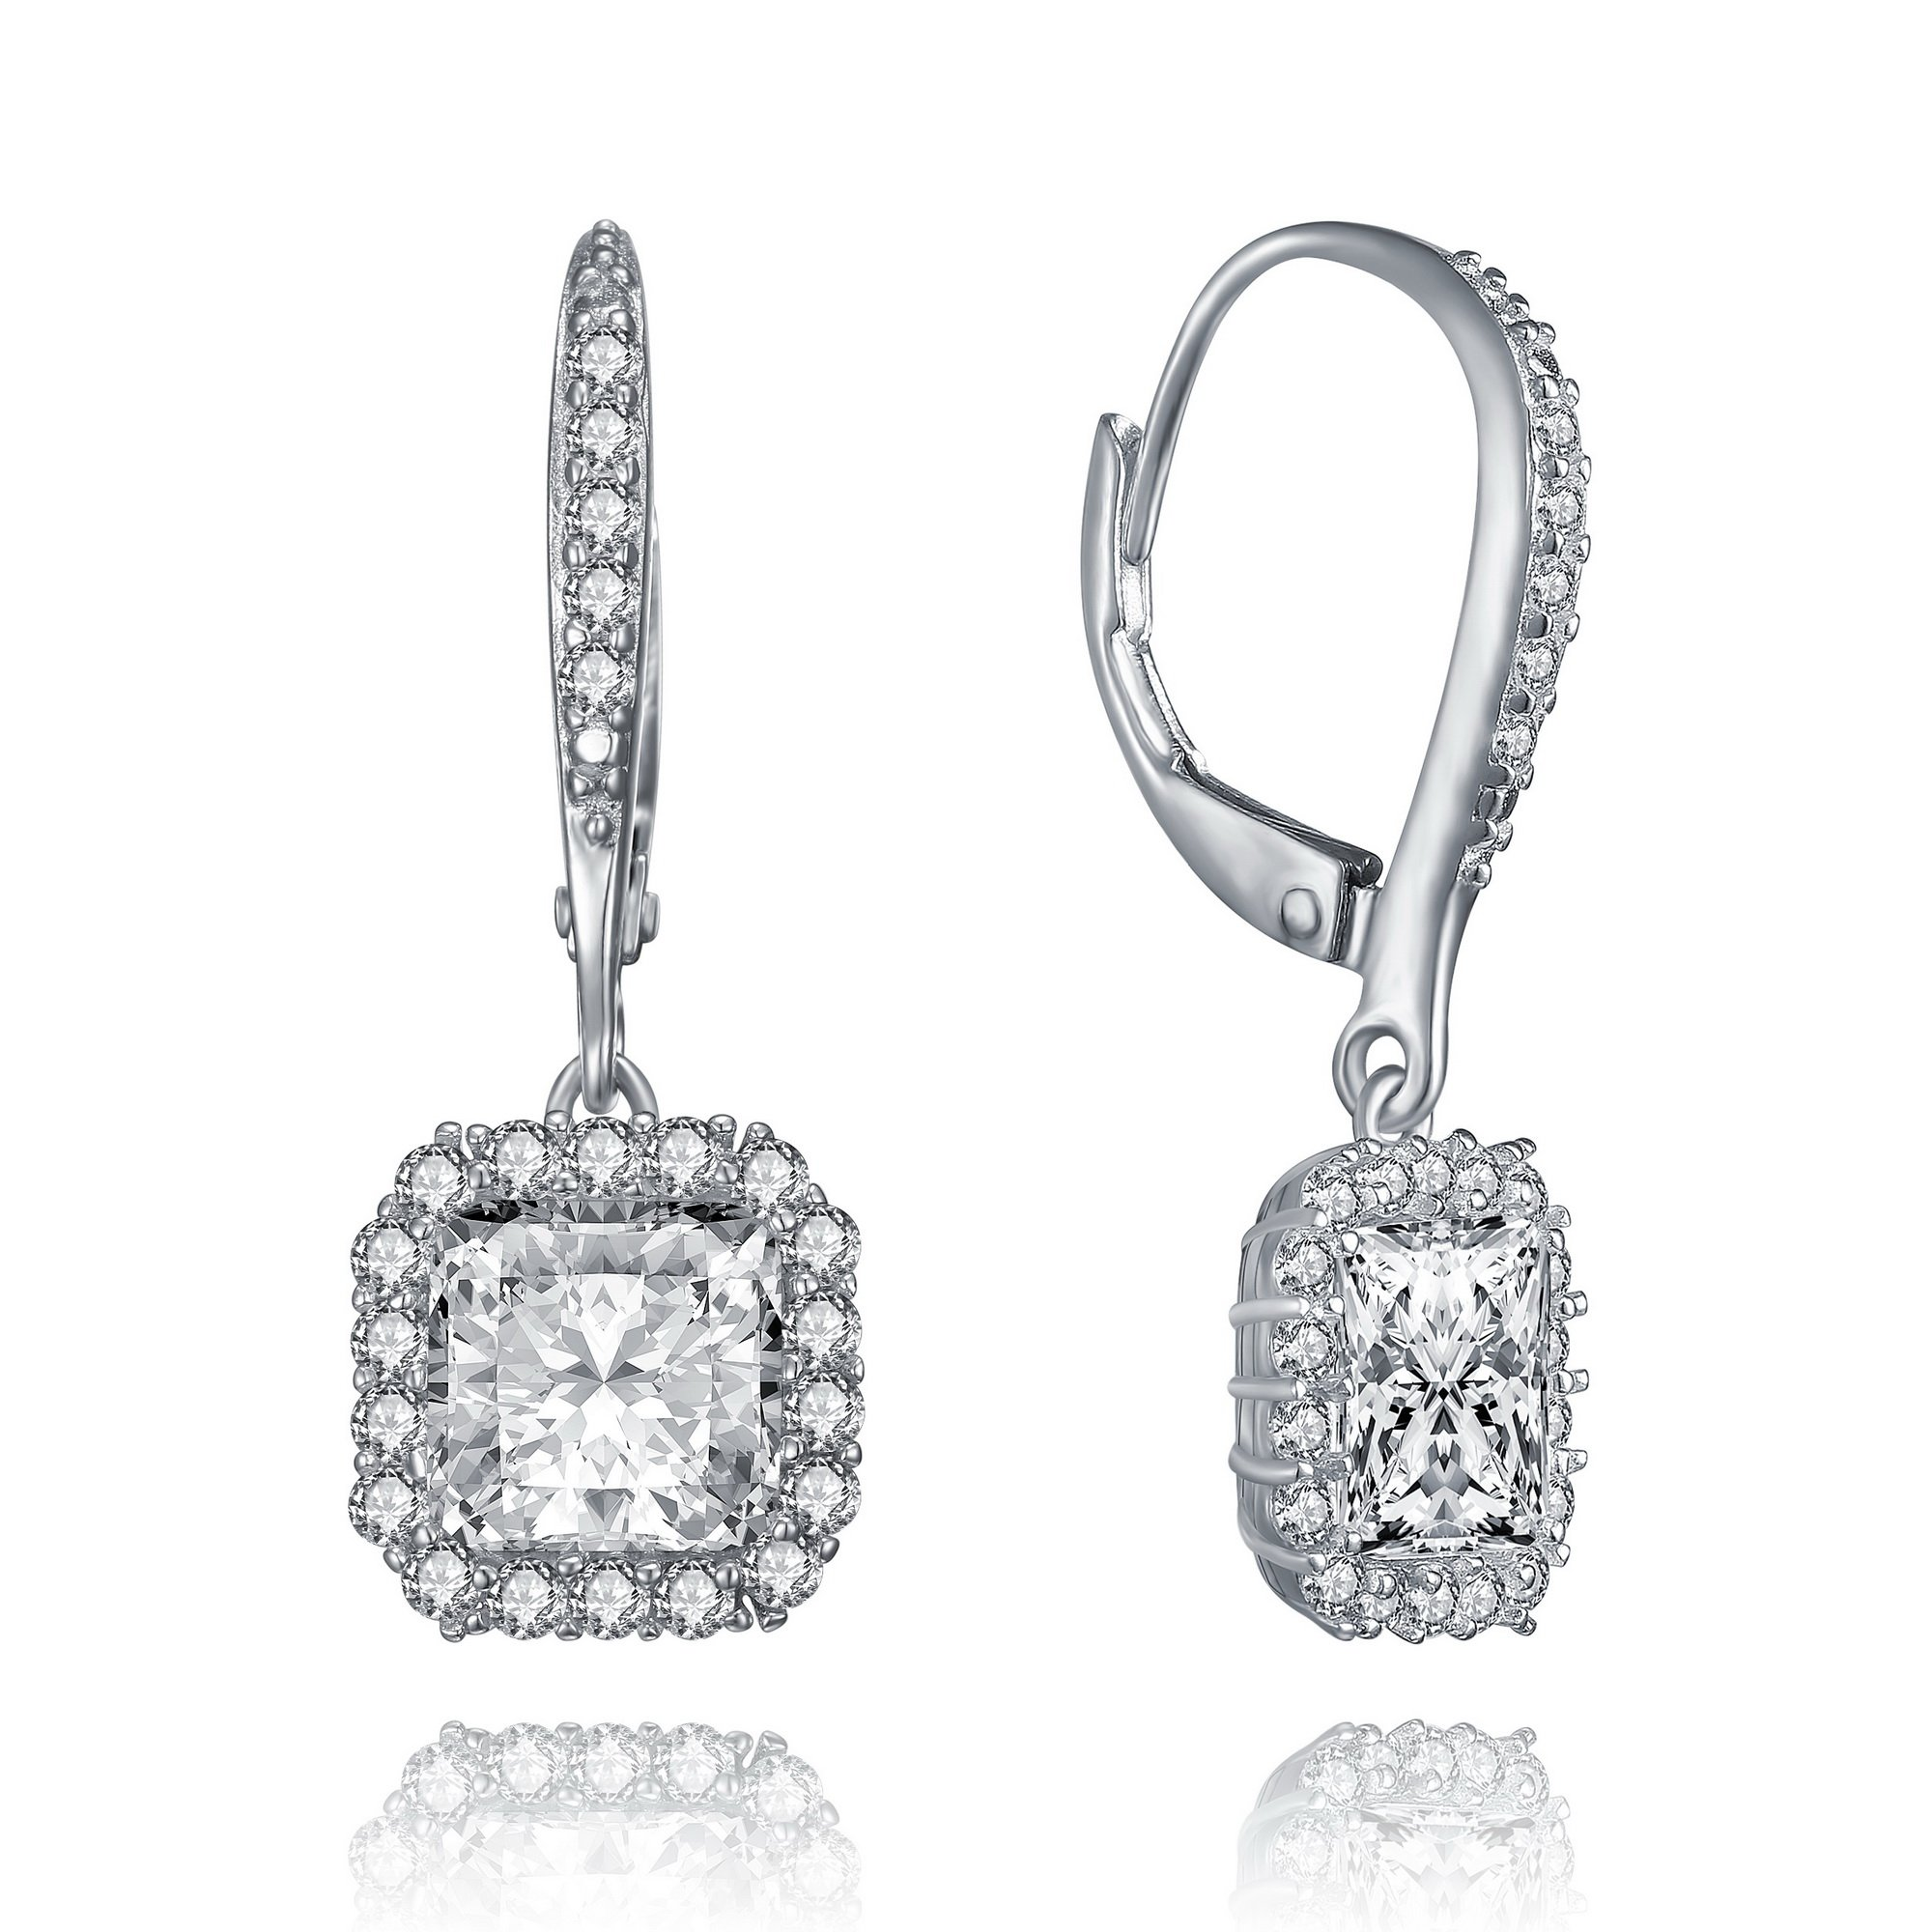 Lux and Glam-Romantic Cubic Zirconia Fine Heart Shape Drop Style Earrings Surrounded with Smaller Stones,Set in Rhodium Plated Sterling Silver (Square Shape)